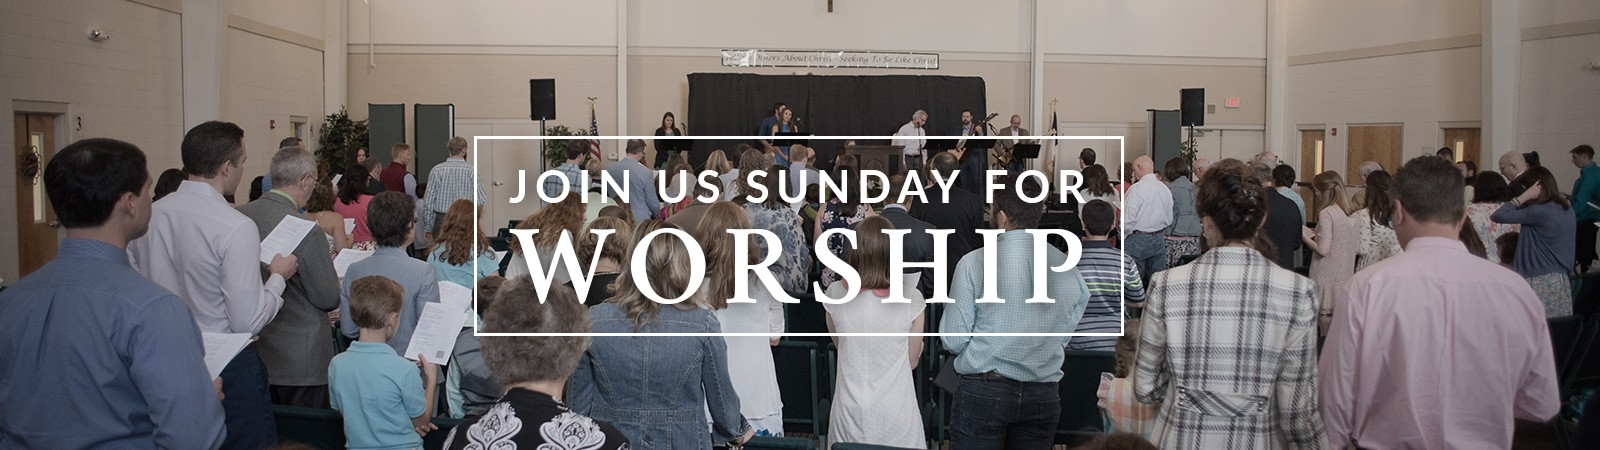 cc worship slider